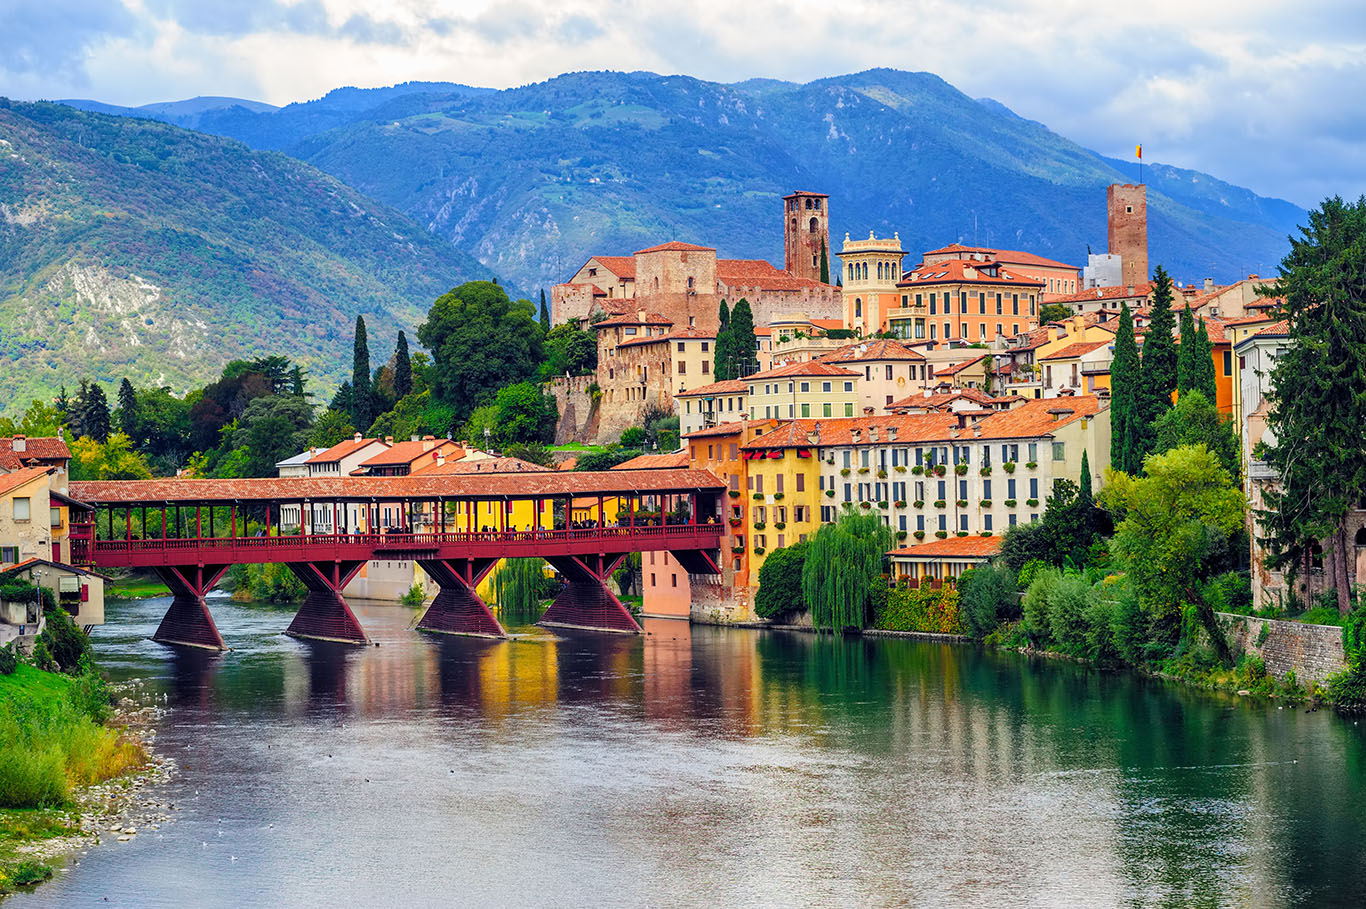 bassano del grappa making city